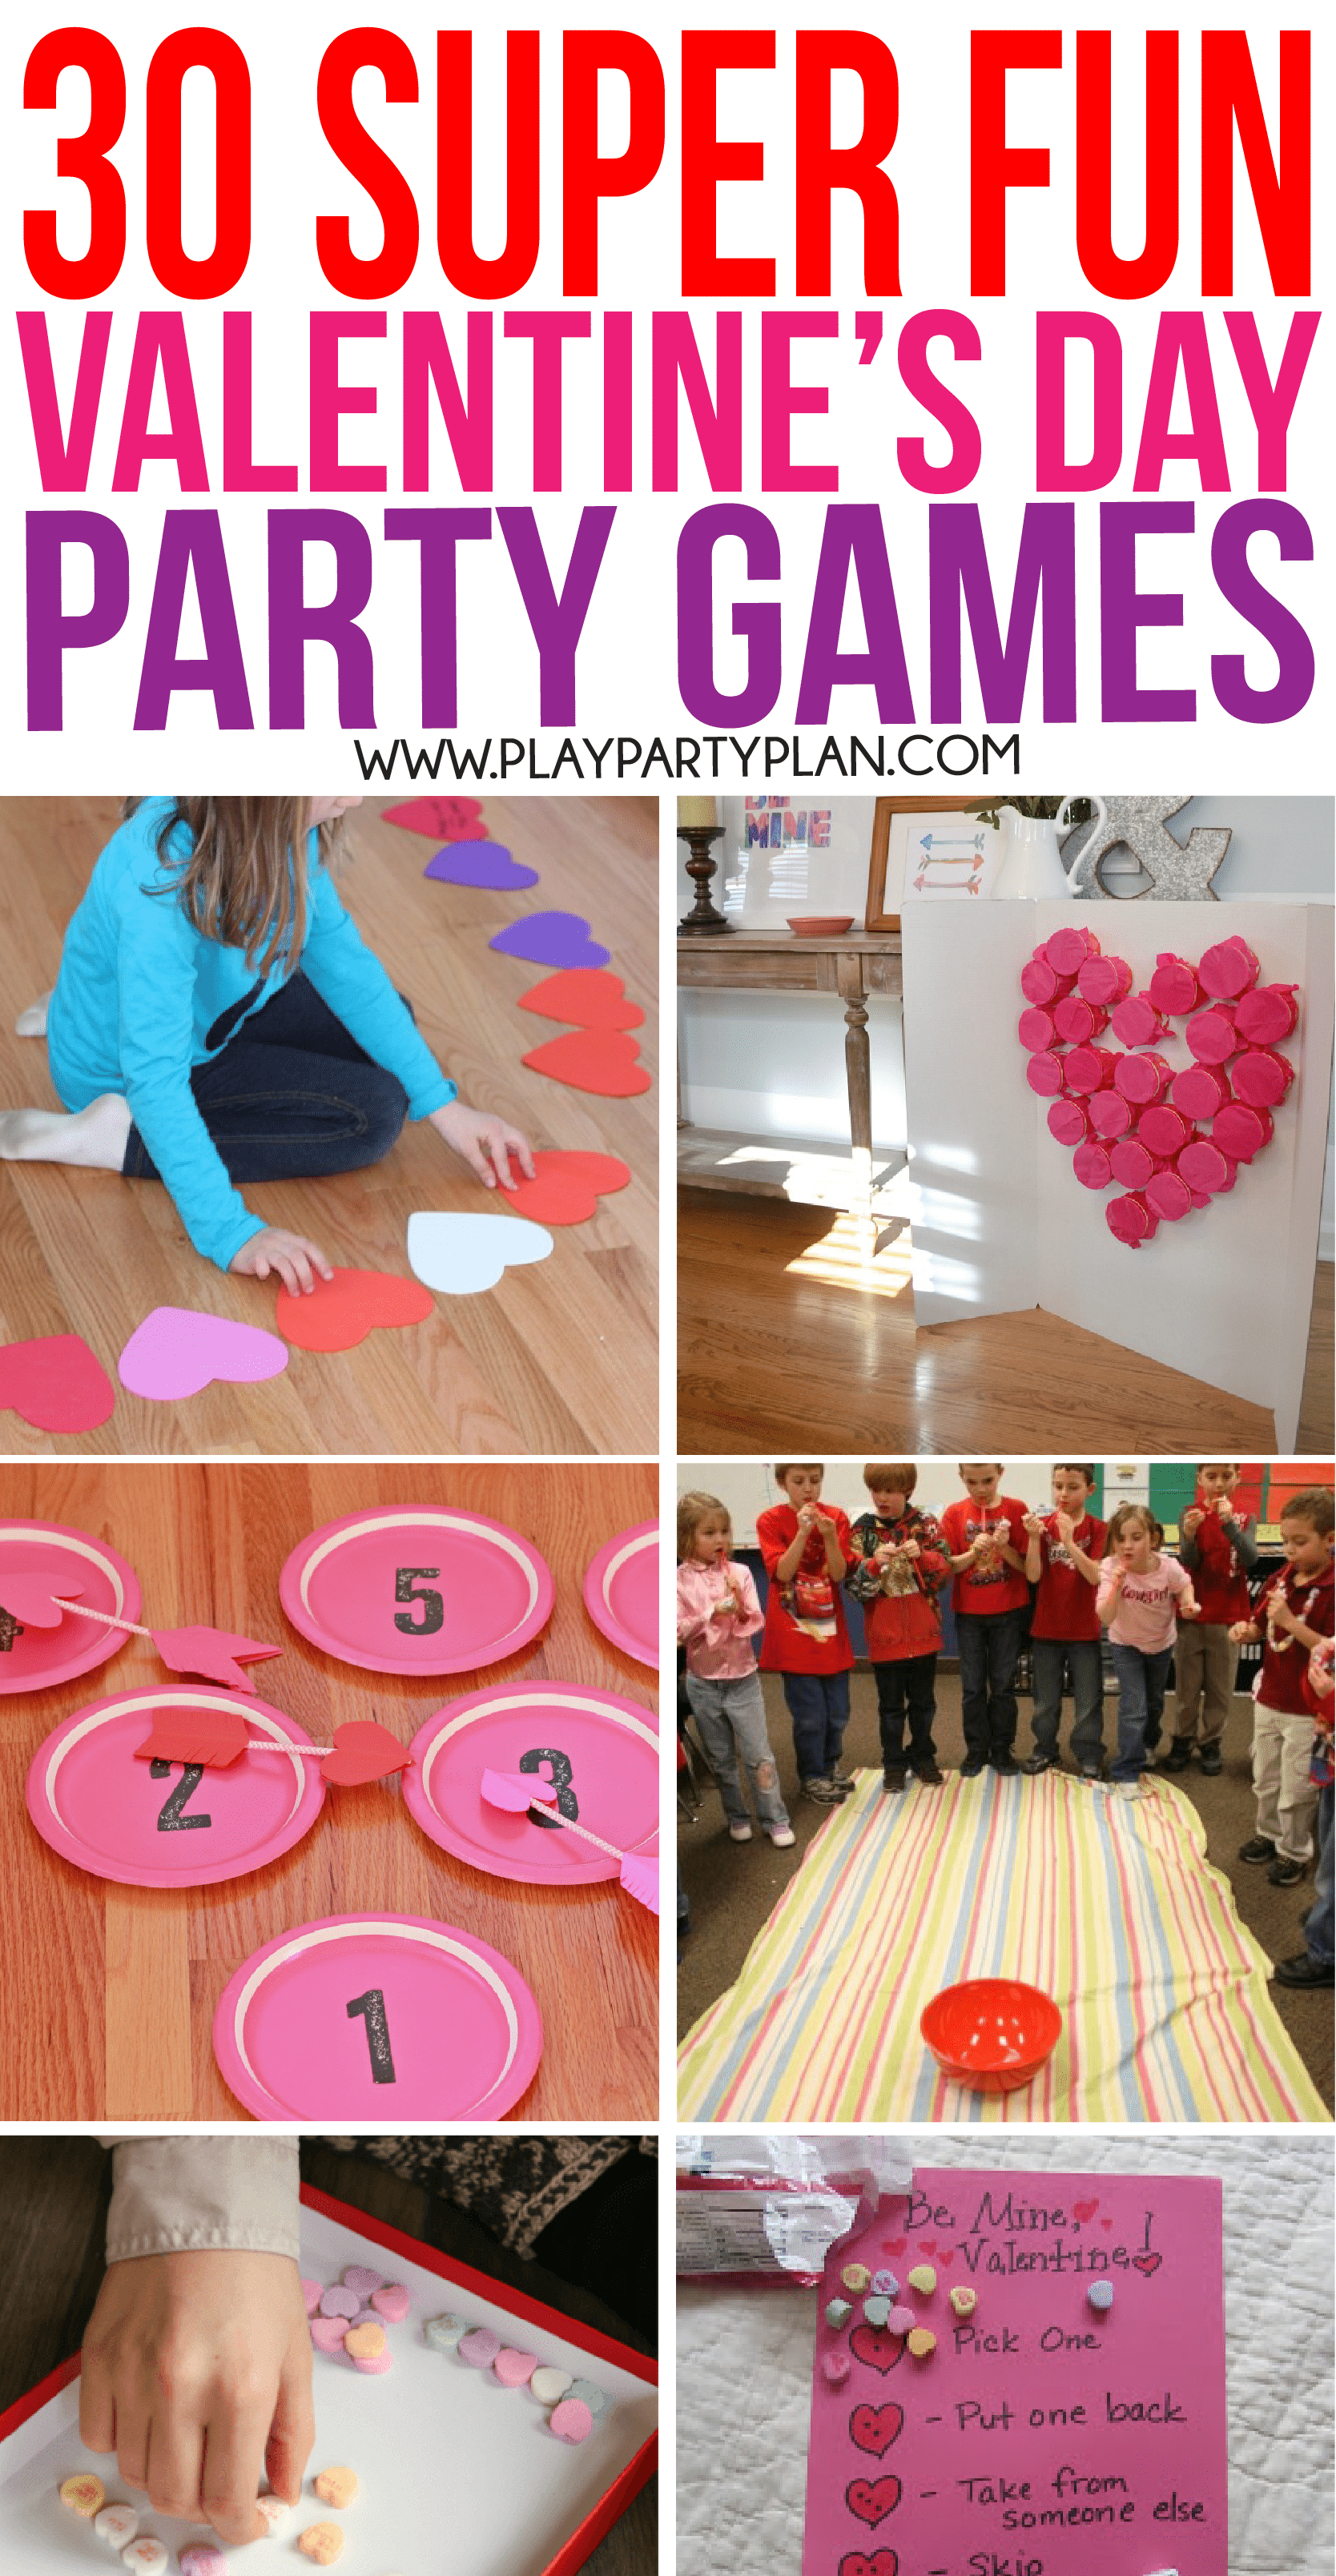 30 Valentine's Day Games Everyone Will Absolutely Love - Play Party Plan - Free Printable Valentine Party Games For Adults